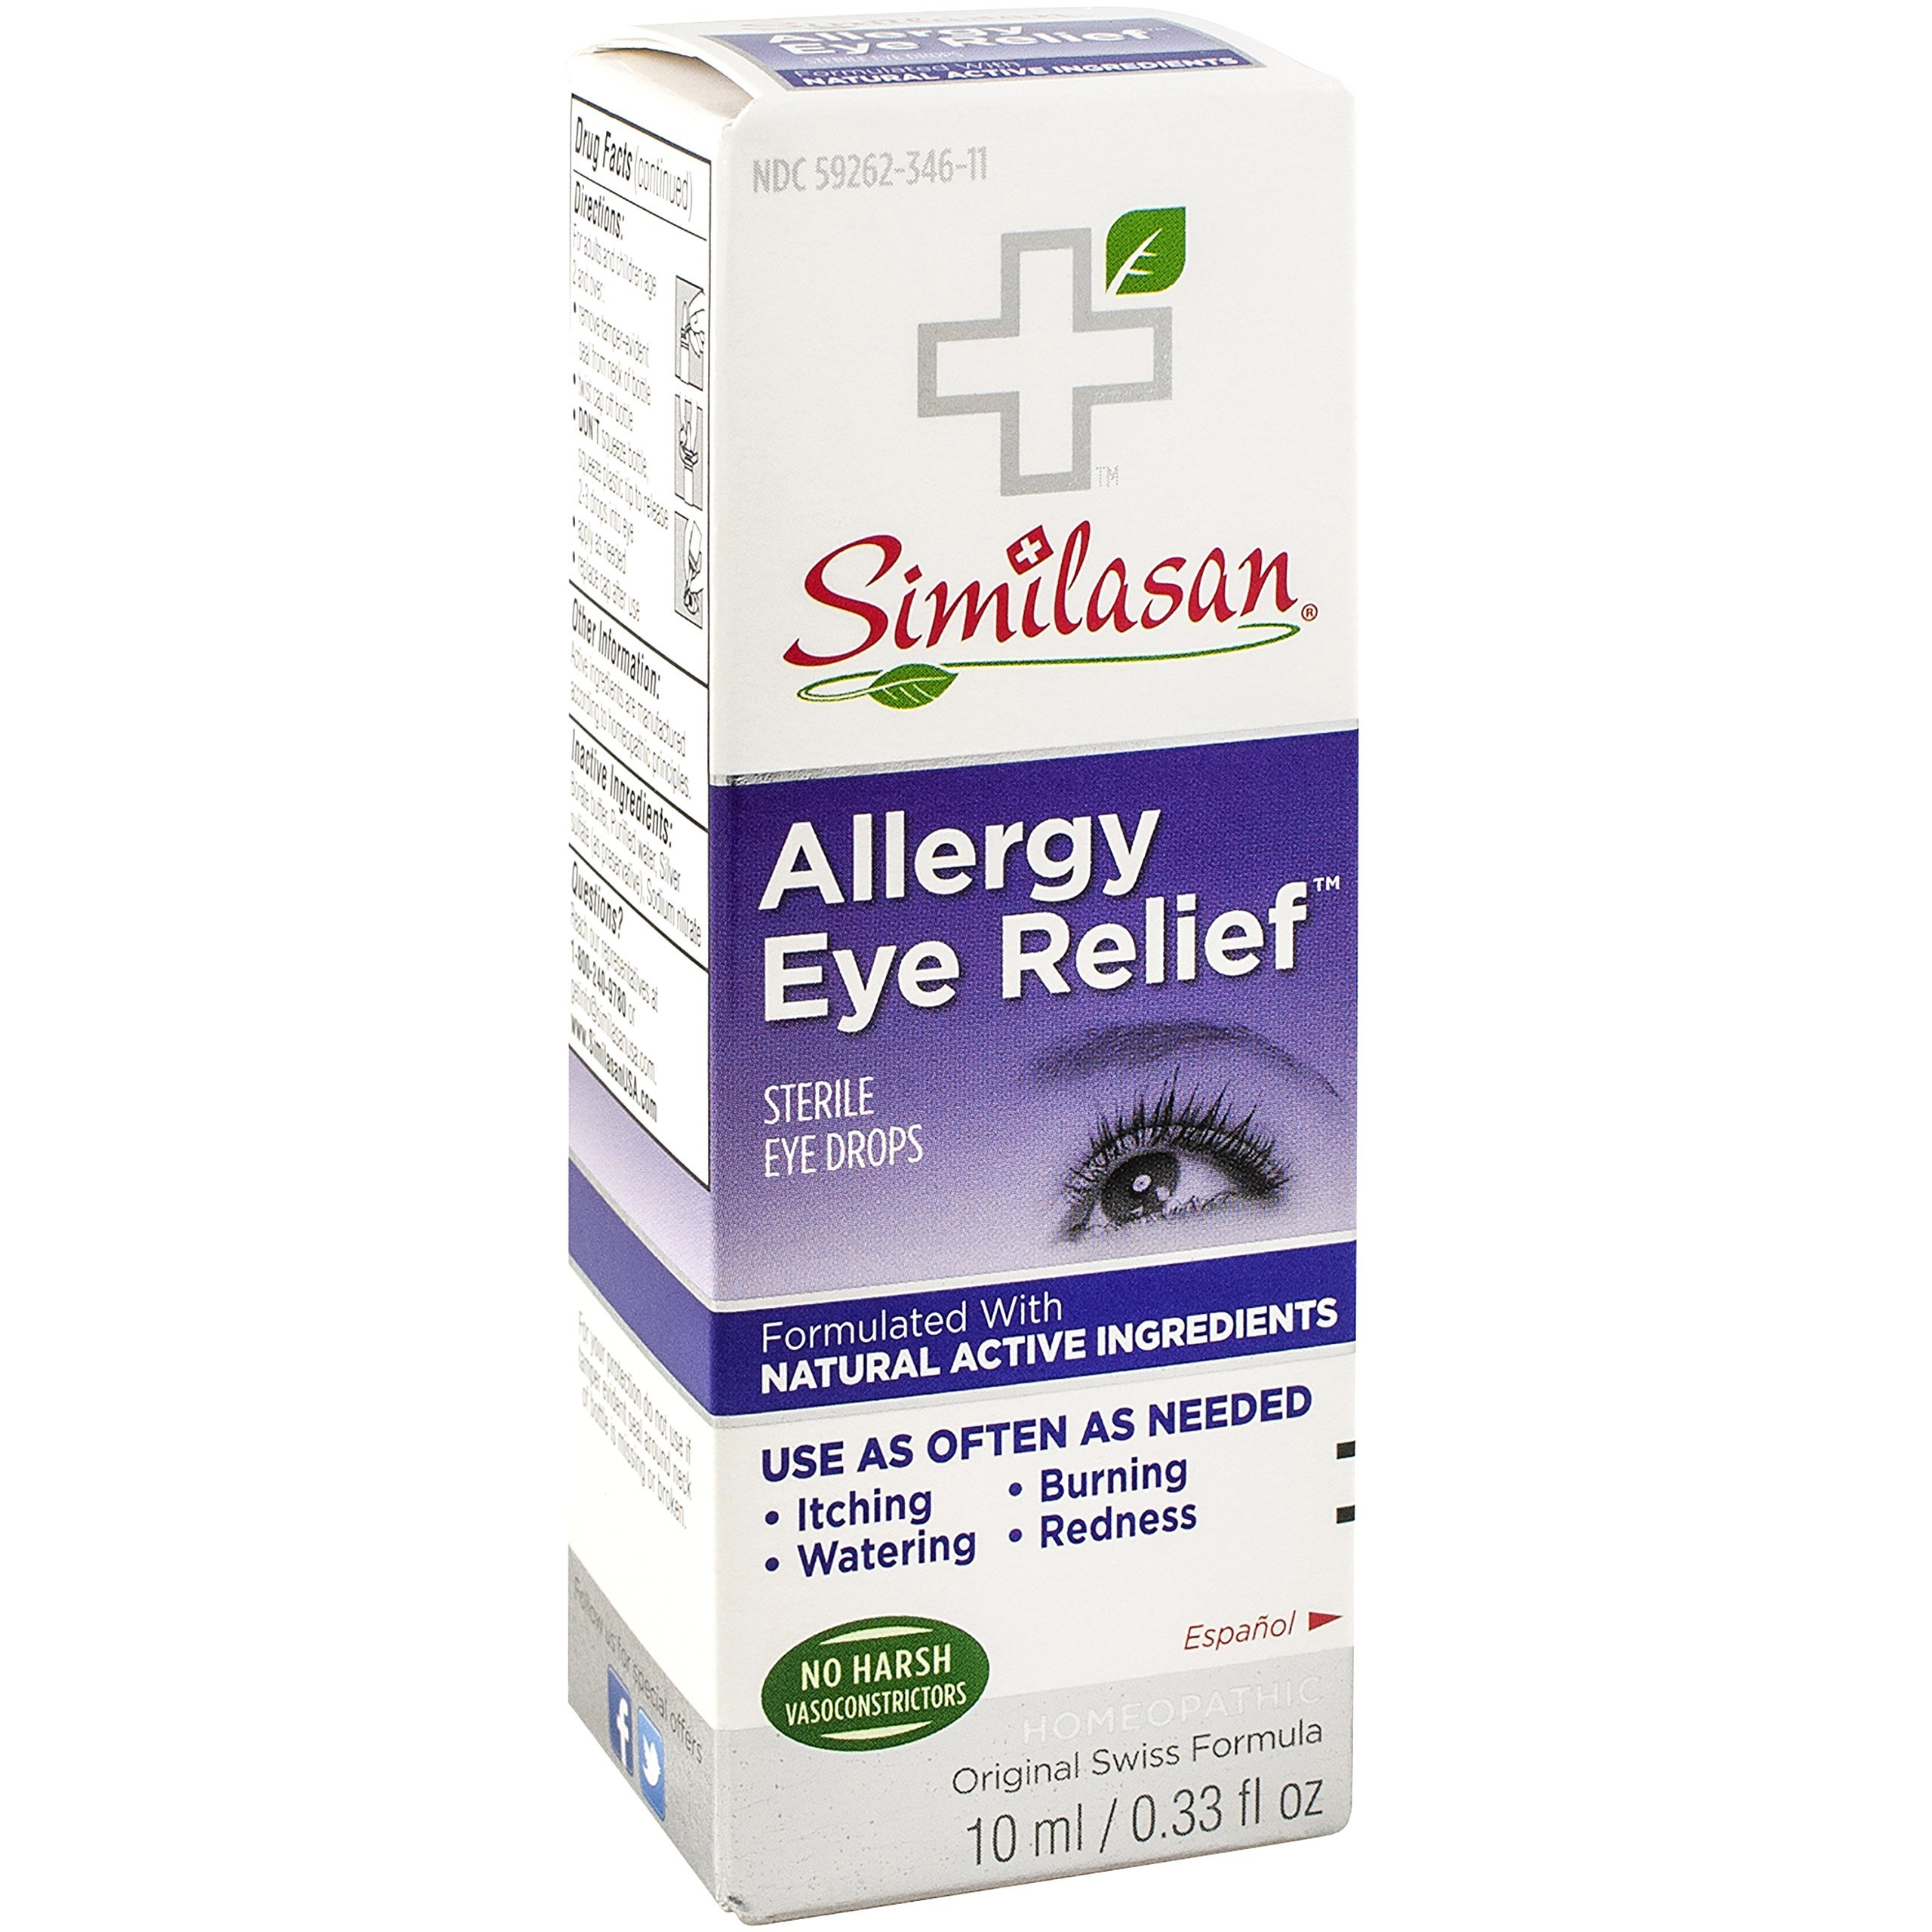 Eye drops for allergies: reviews. What eye drops are better for allergies? 33